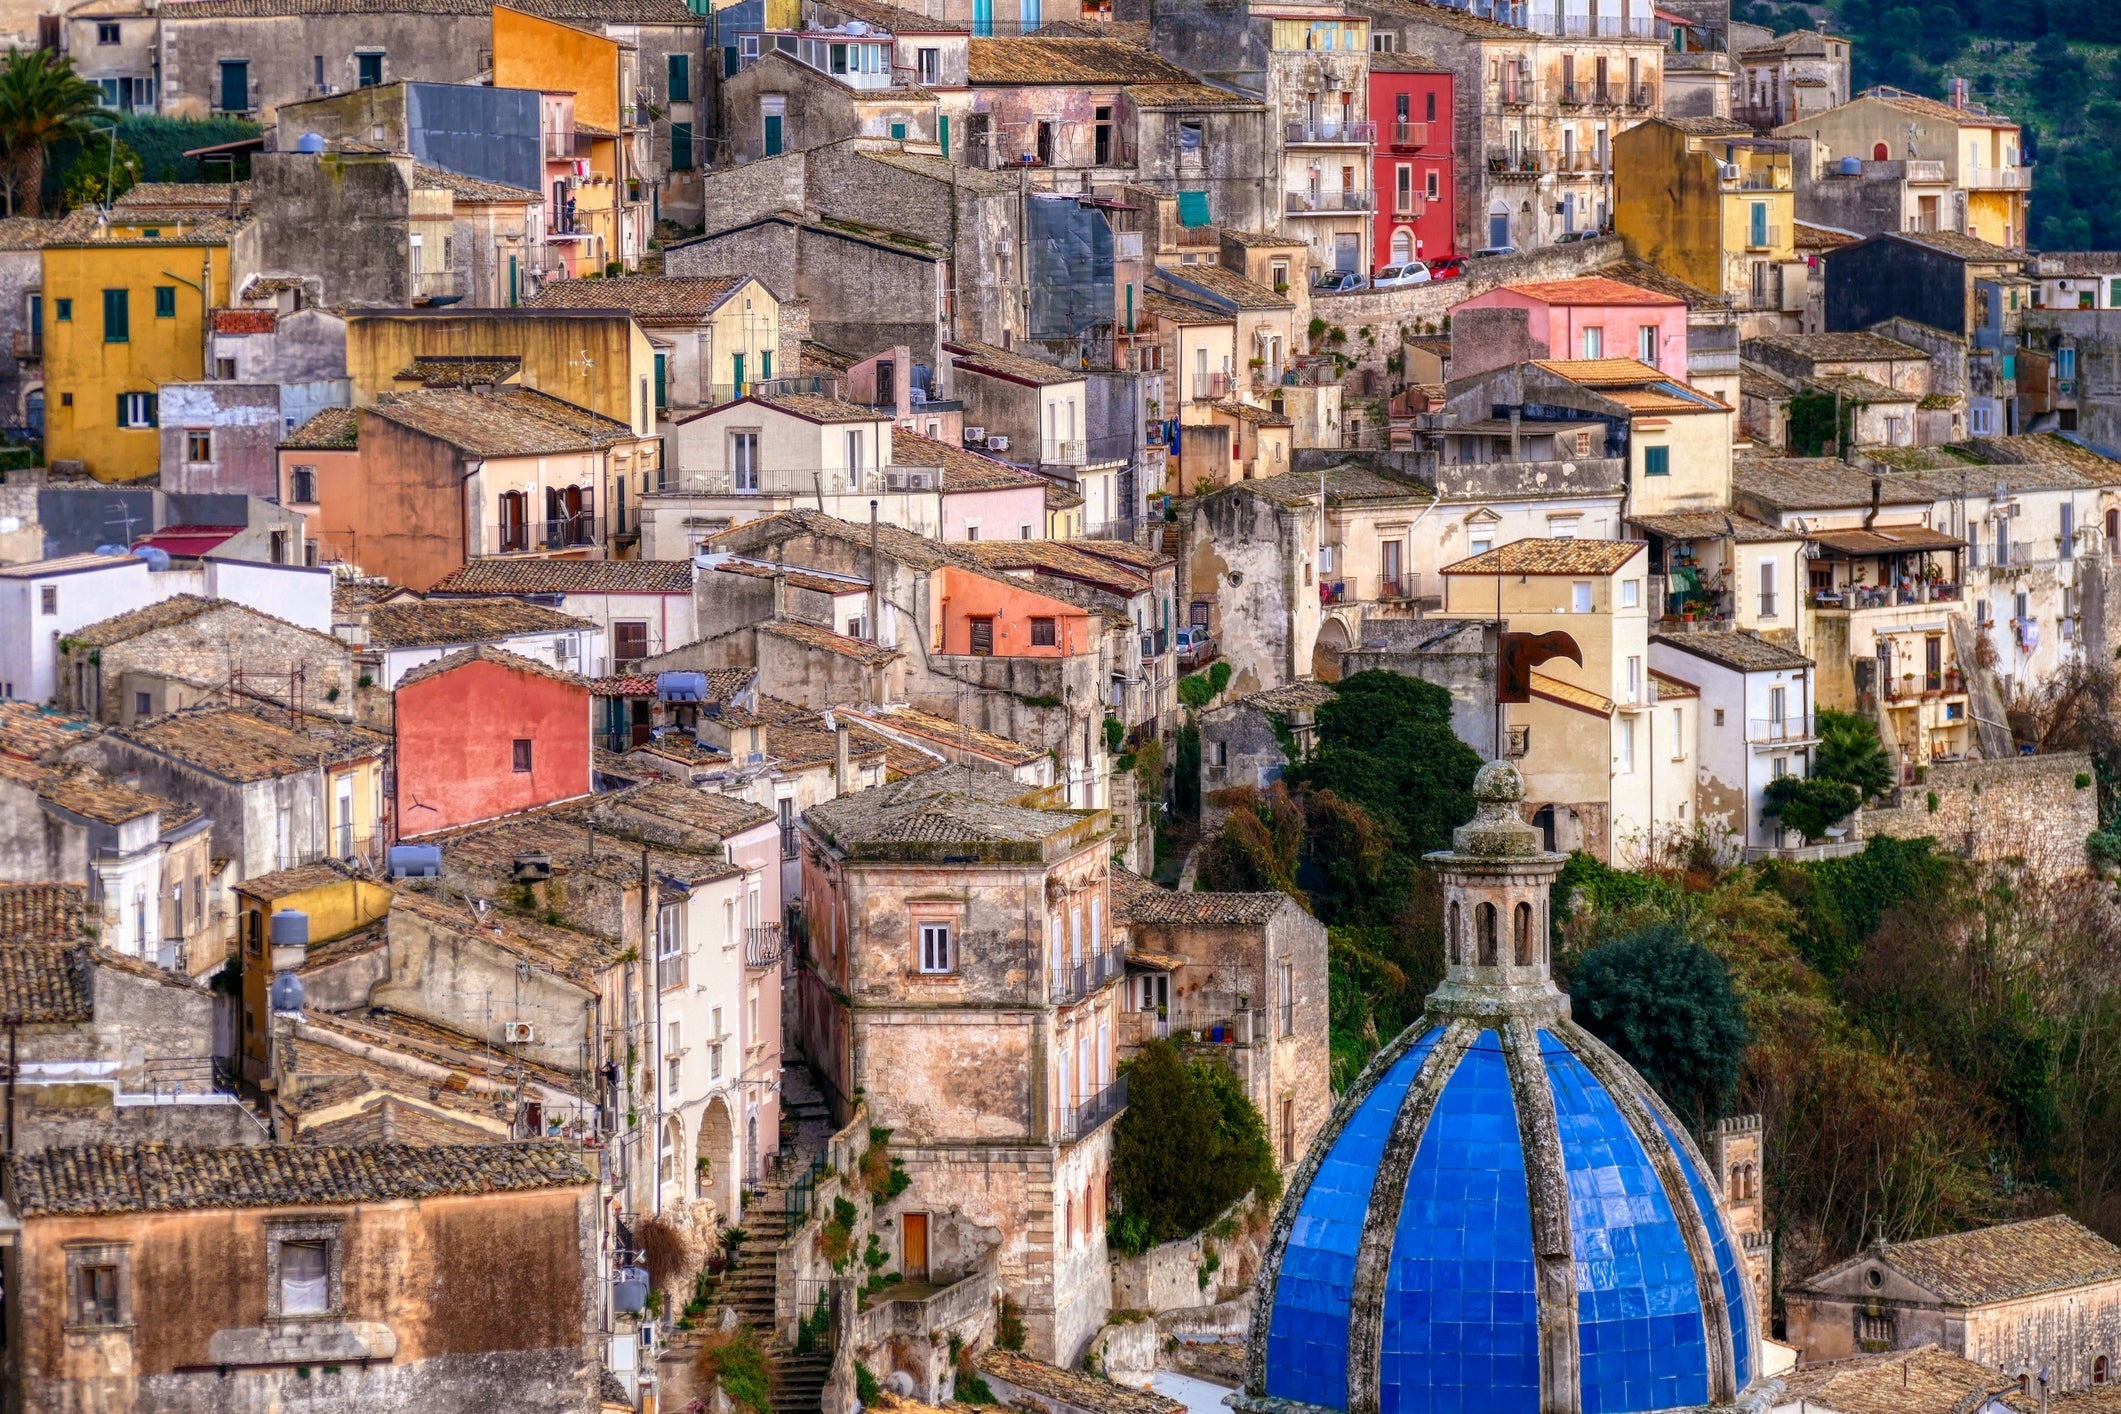 13 of the most beautiful villages and towns in Sicily - The Points Guy